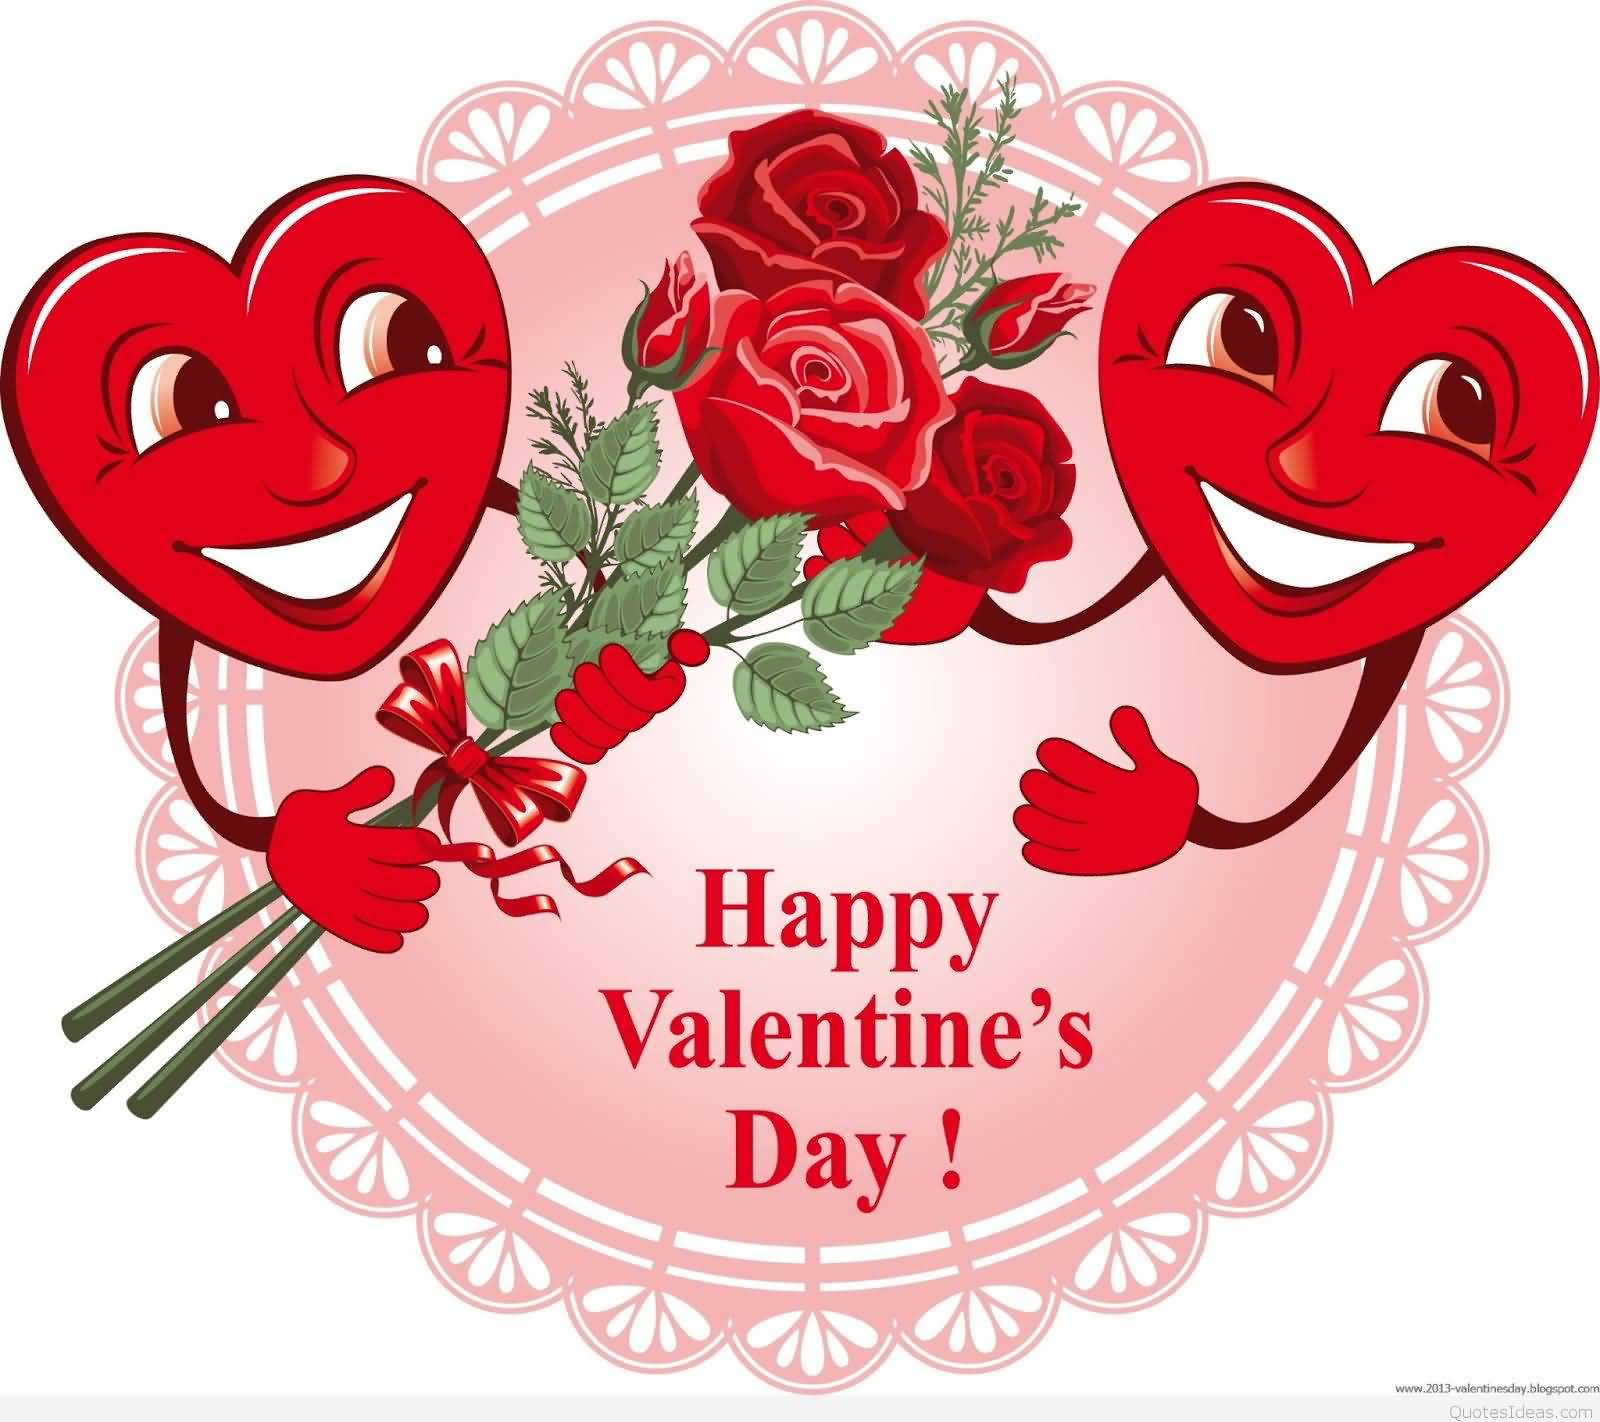 70 Most Beautiful Happy Valentines Day Greeting Pictures And Images